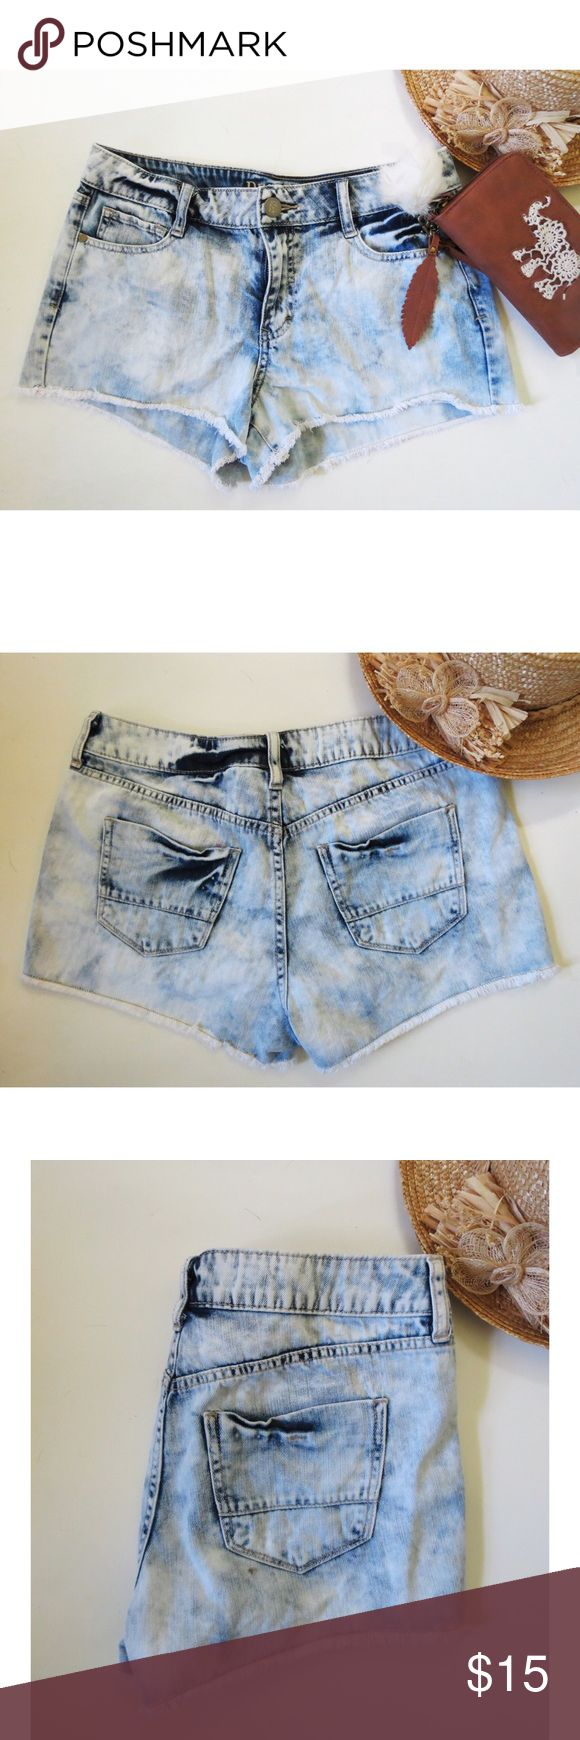 High waisted acid wash jeans Adorable high waisted acid wash shorts from Decree. These shorts are super cute with it's light wash denim and dark blue splashes giving them that perfect acid wash look! Shorts are also high waisted to fit that figure perfectly. Size 11 but they run really small so they would fit a size 7 best. In excellent condition! Decree Shorts Jean Shorts